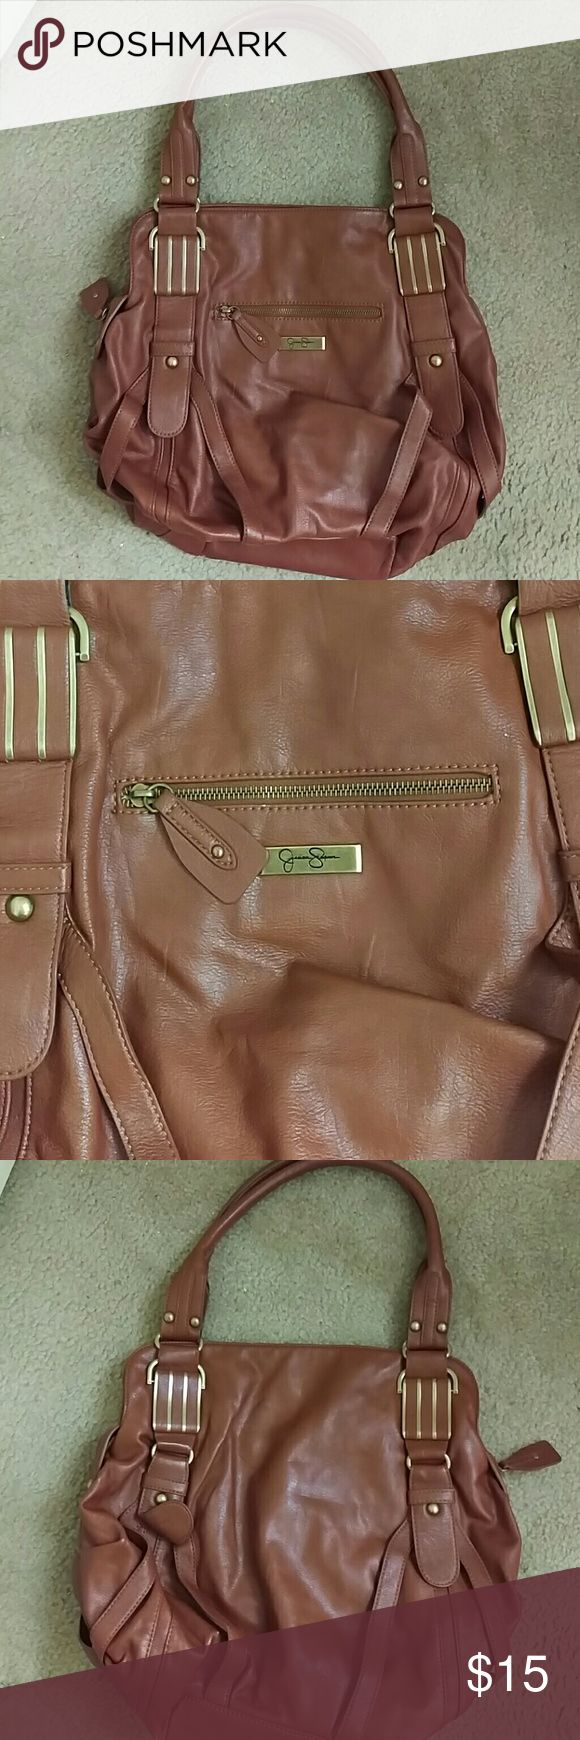 Jessica Simpson Hobo Bag Great condition. Does have some pen ink stains on the inside but only on the inside. Smoke and pet free home. Super cute and roomy. C Jessica Simpson Bags Hobos